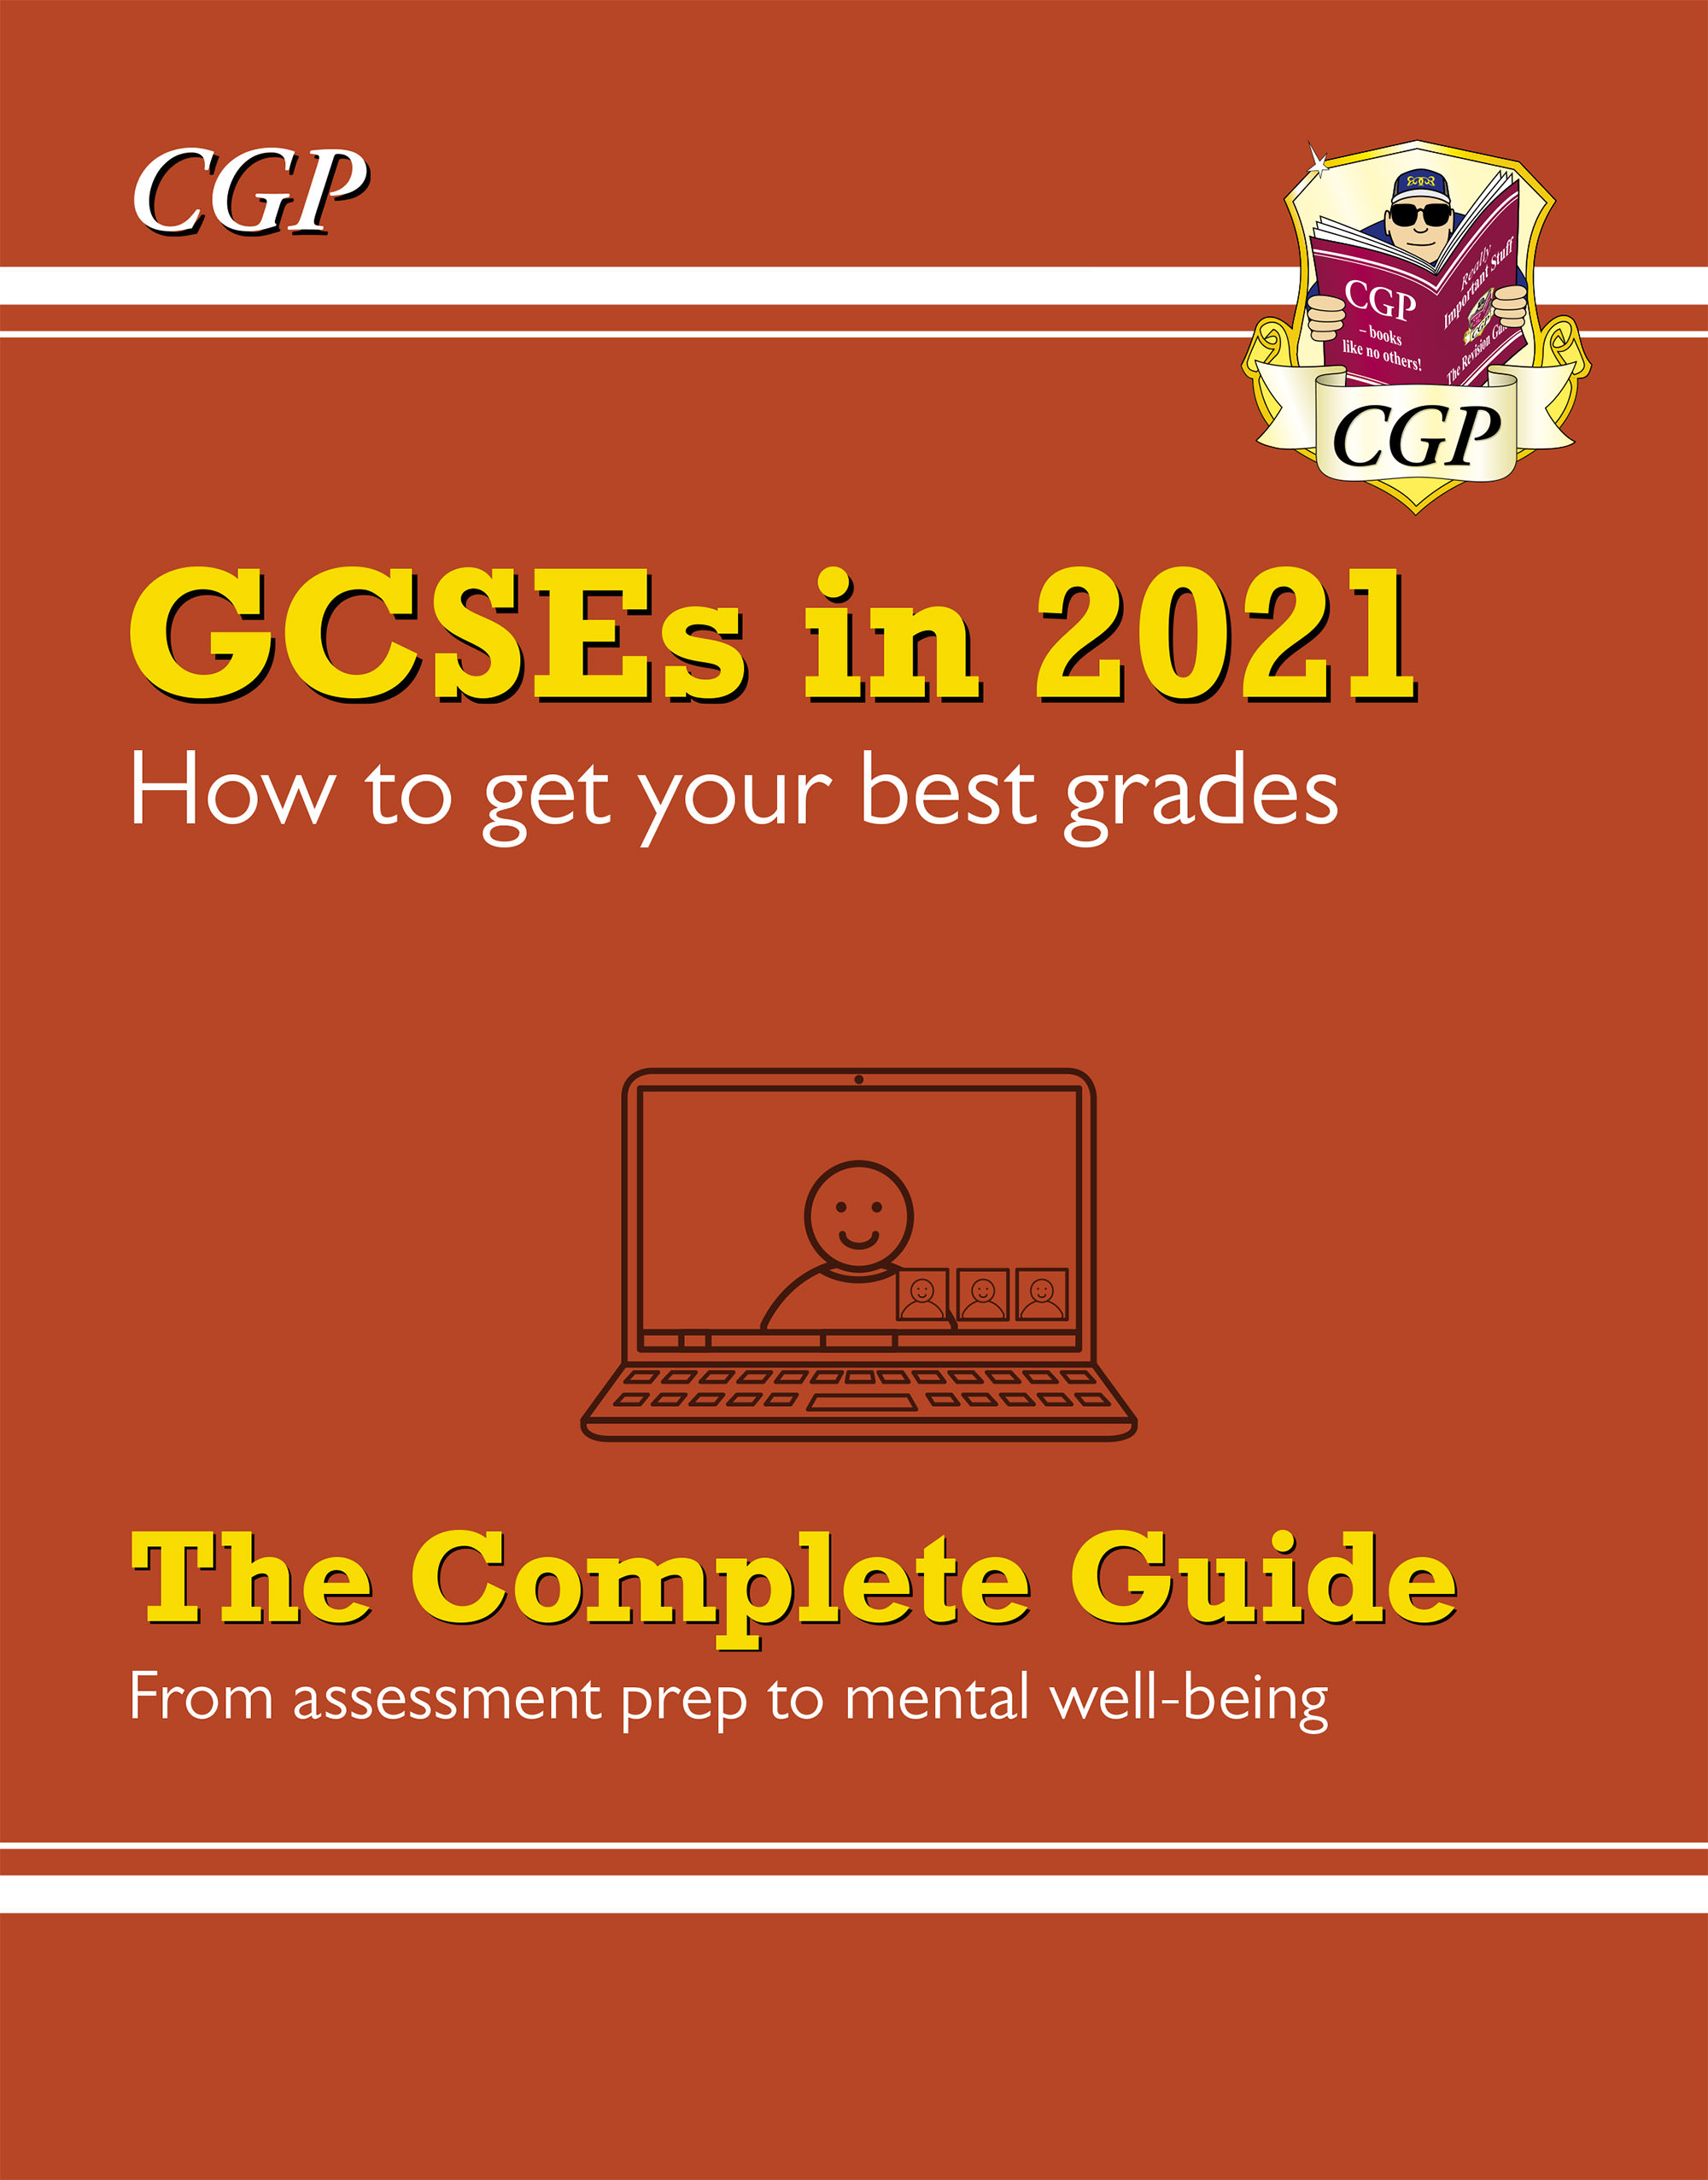 XHBGR41DK - GCSEs in 2021: How to get your best grades - The Complete Guide Online Edition